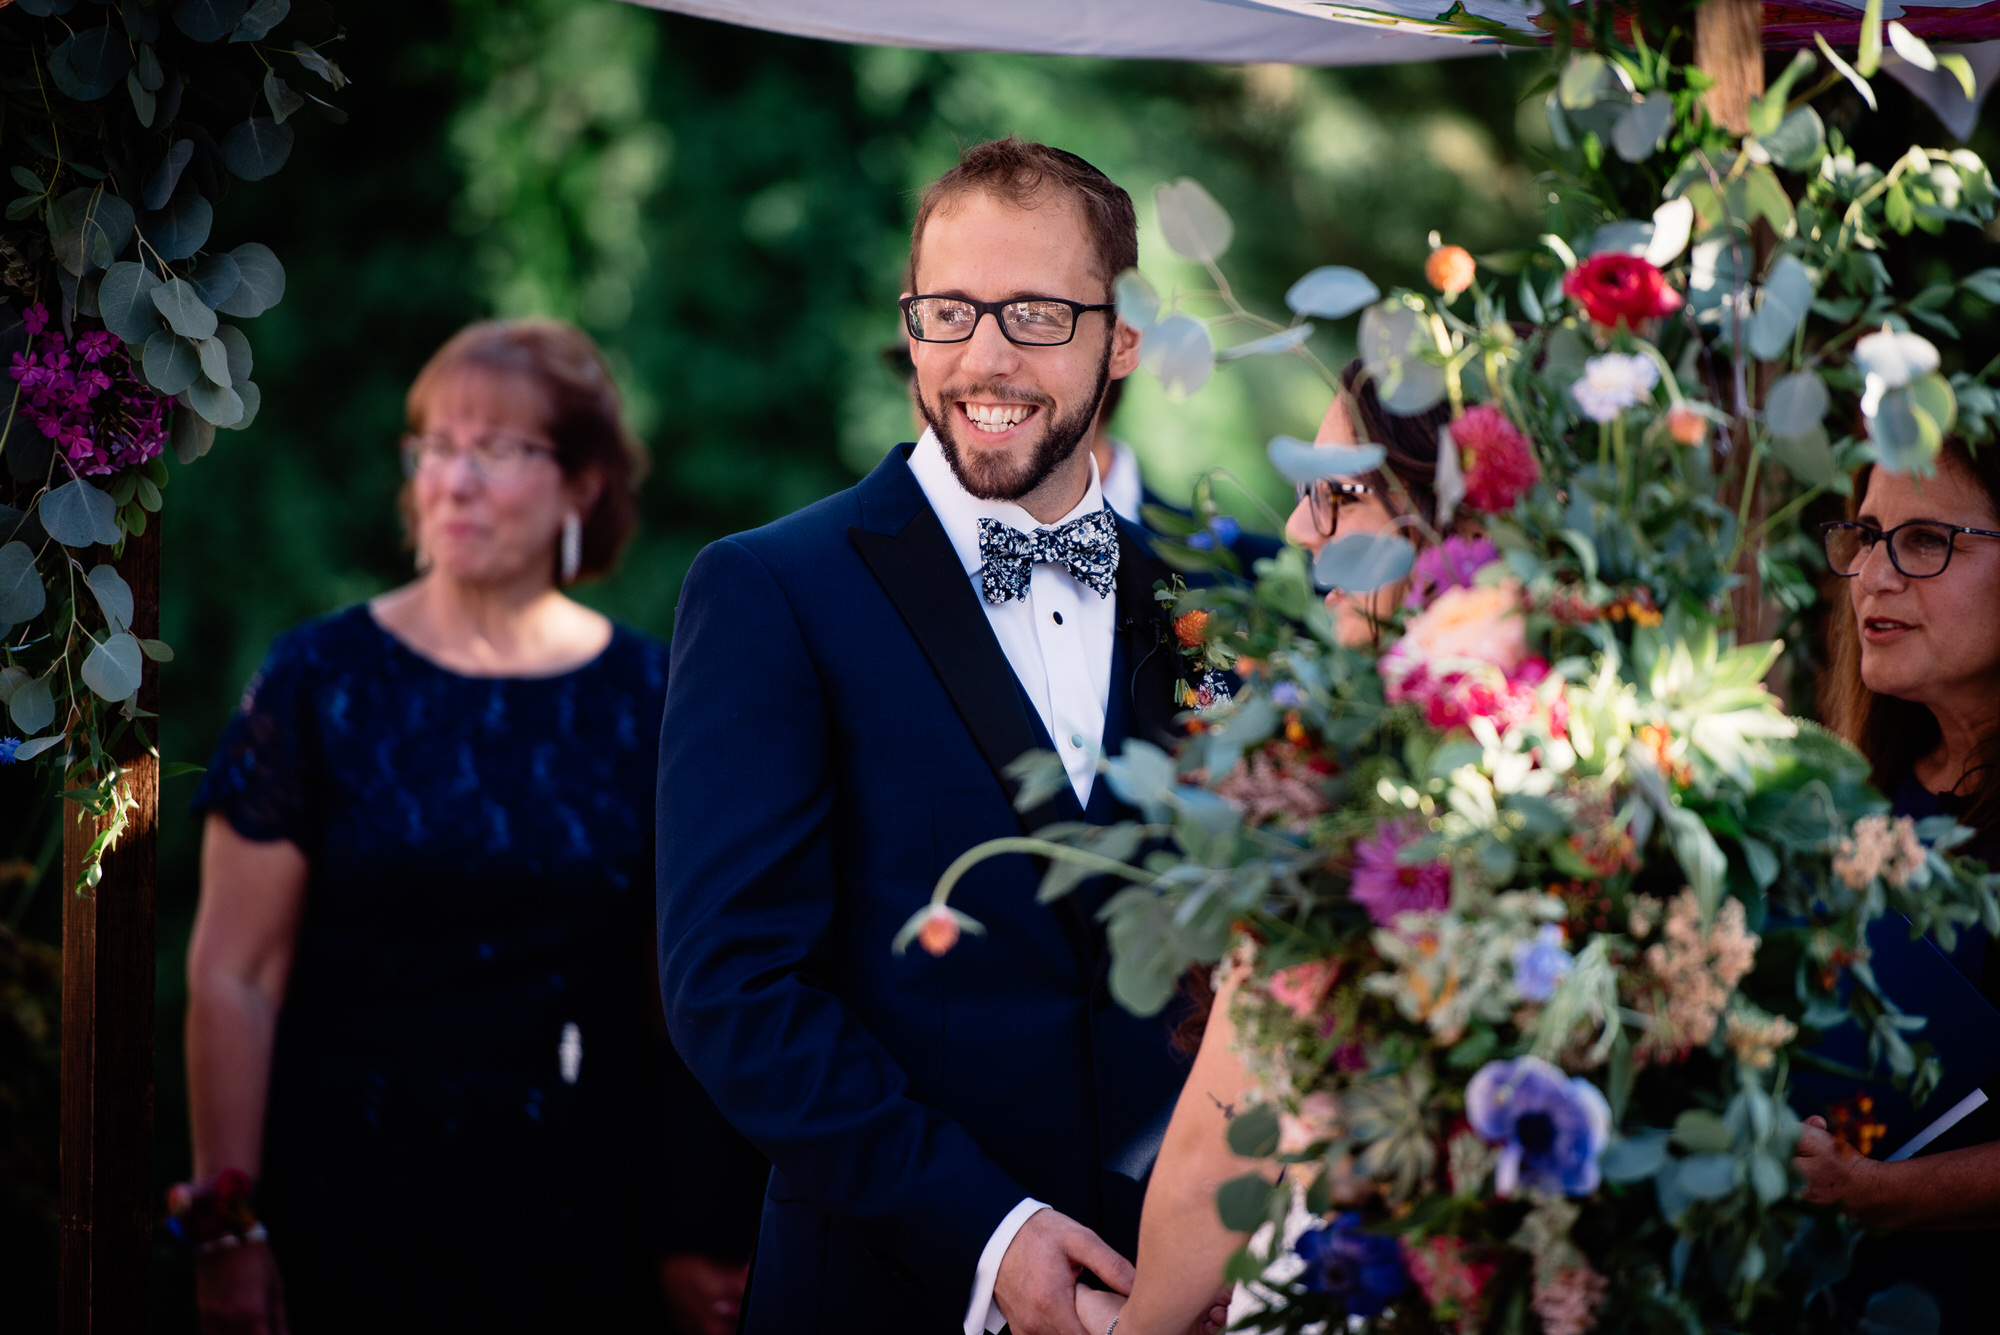 Bear_Creek_Mountain_Wedding_054.jpg